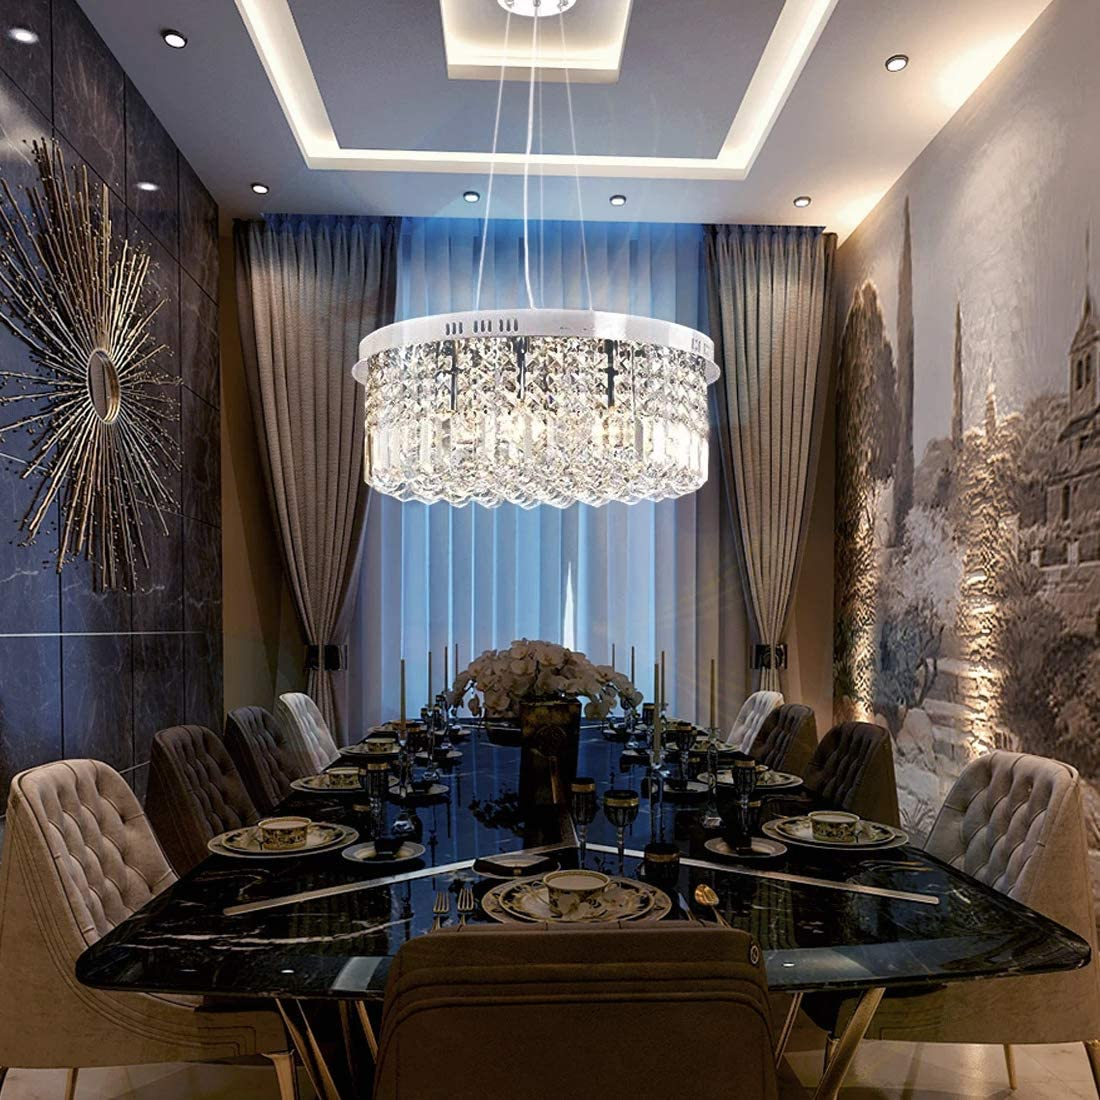 SILJOY Drum Crystal Chandelier Lighting Modern Raindrop Pendant Ceiling Lights for Dining Room Kitchen Island D19.7 x H8.3